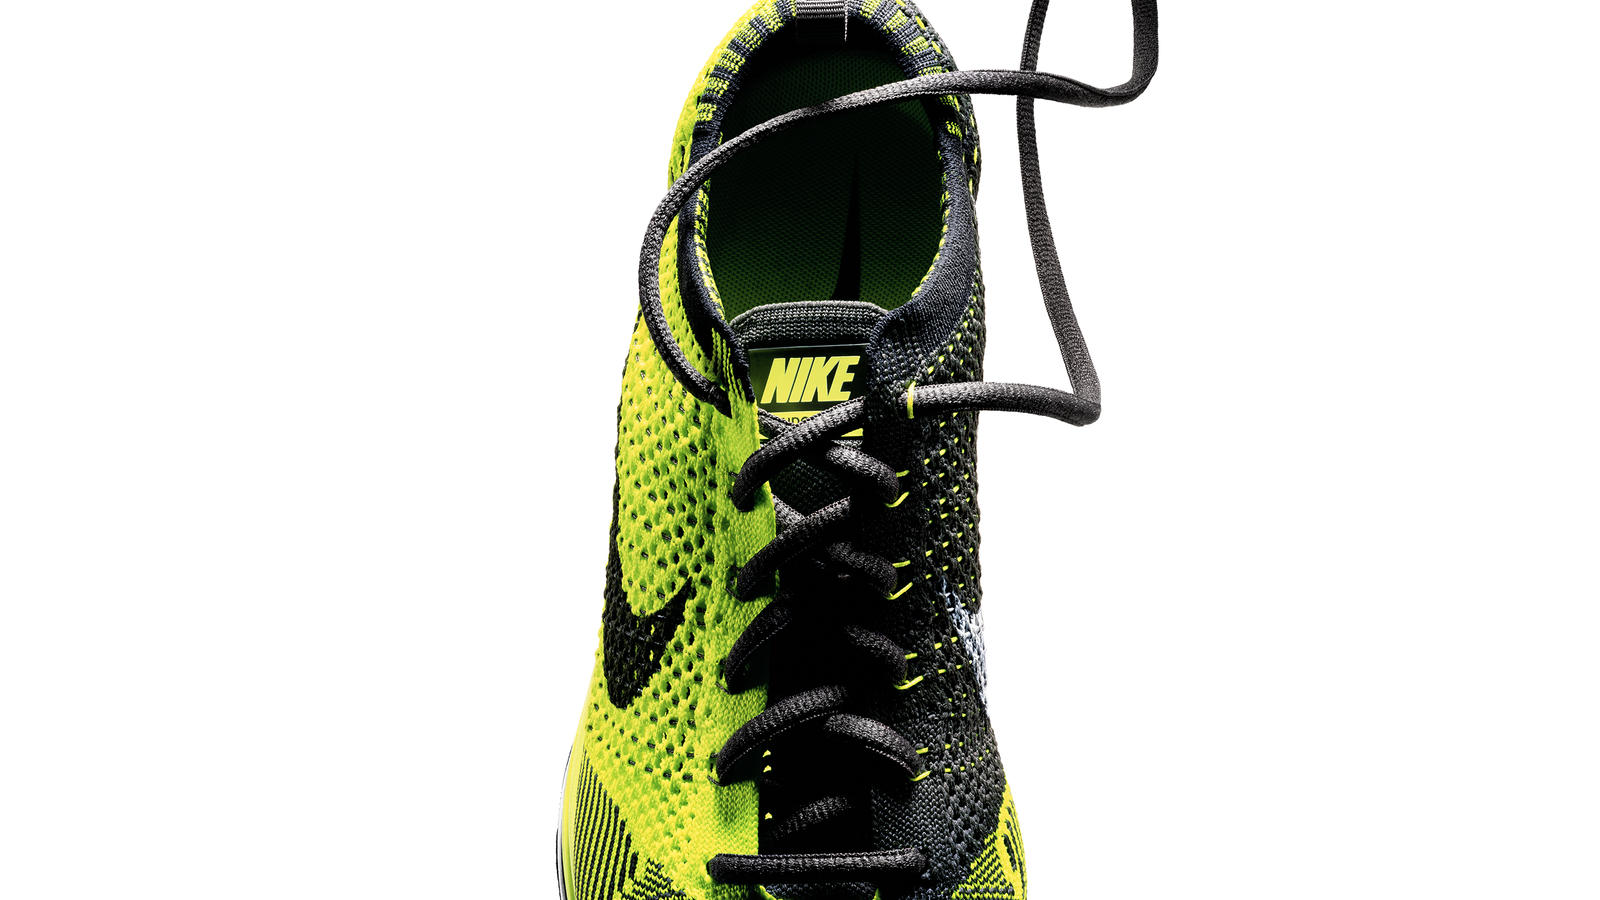 d988d3672f7a1 NIKE engineers knit for performance - Nike News